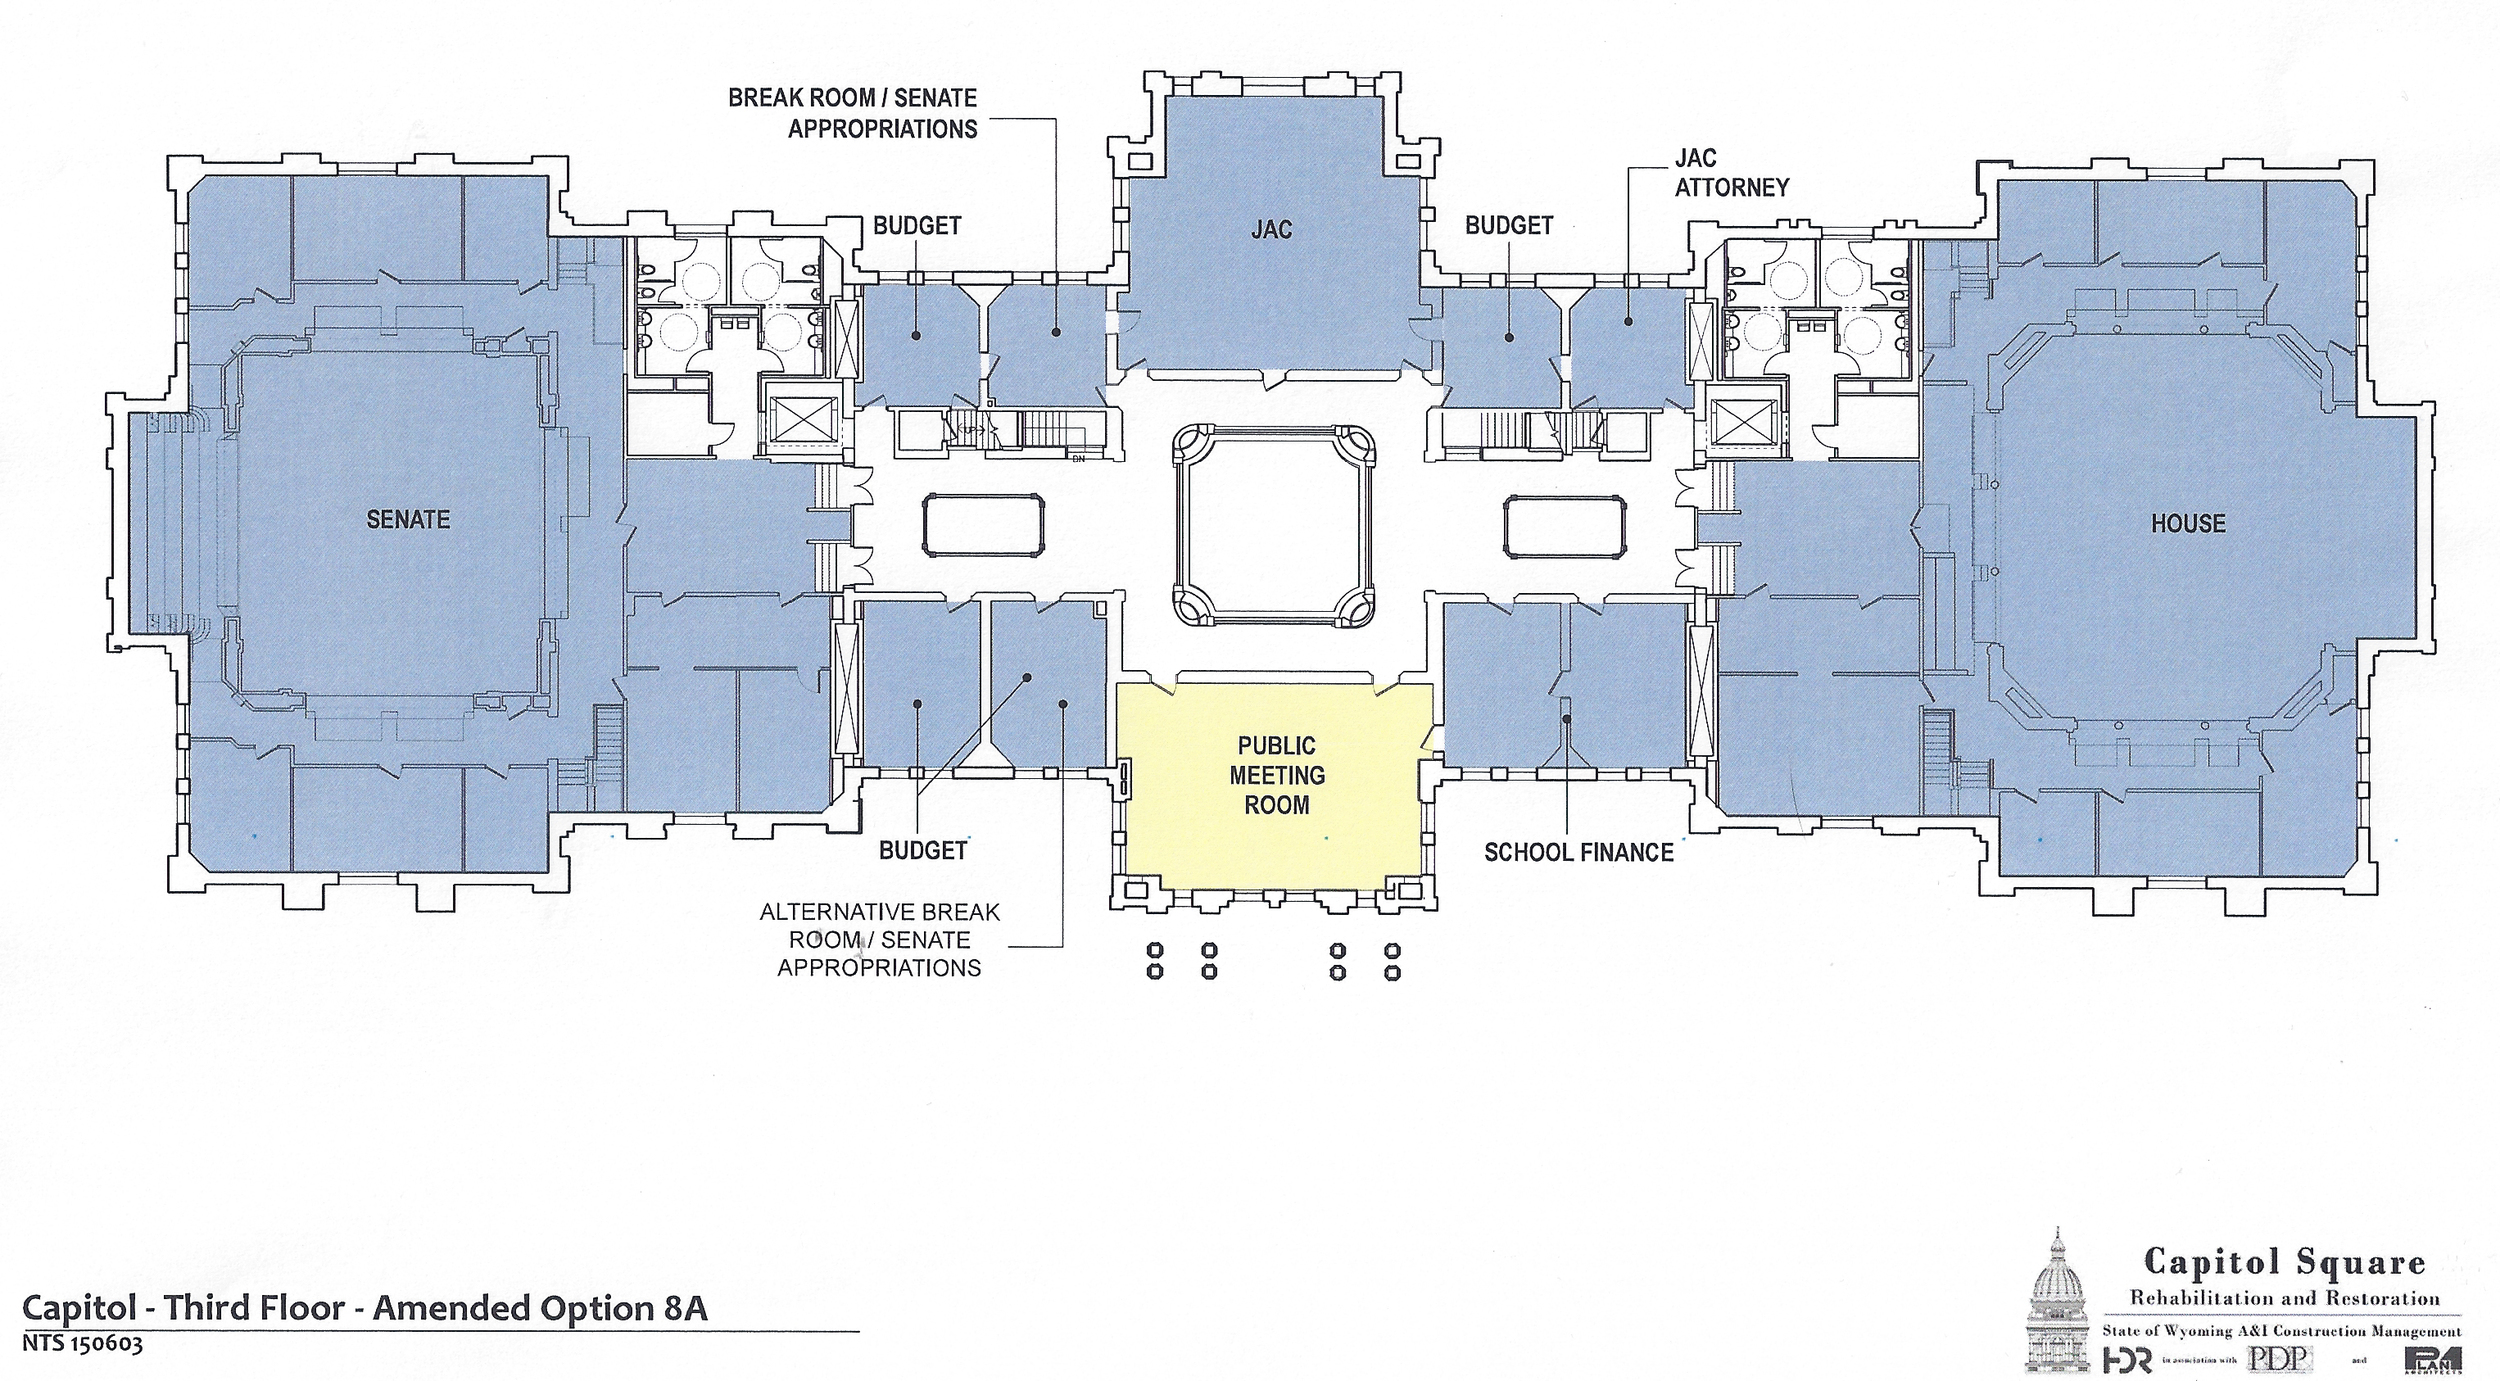 Preliminary design plans for the third floor of the Capitol as of June 2, 2015